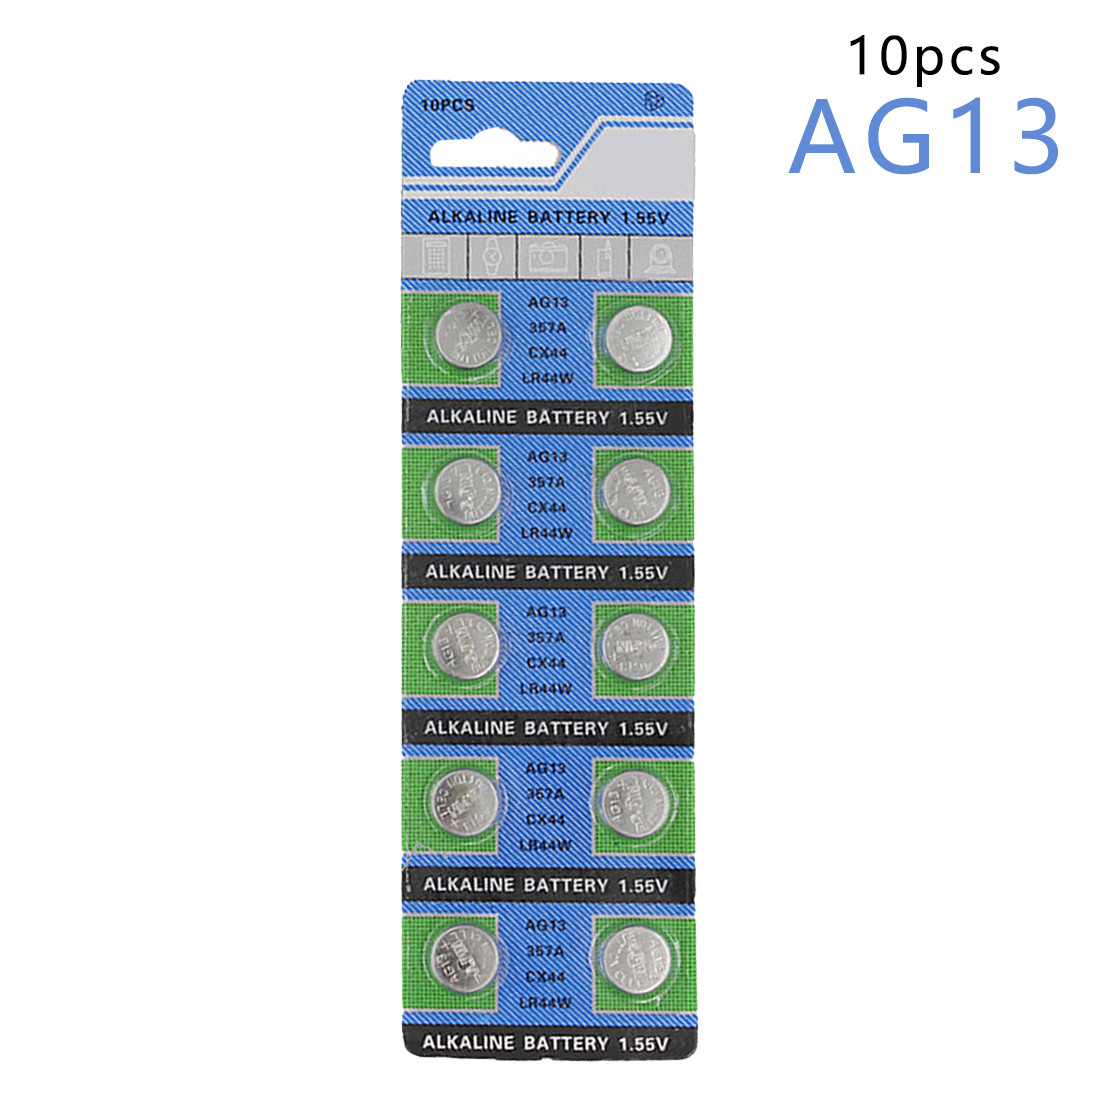 цена на Centechia 10 Pcs AG13 LR44 357A S76E G13 Button Coin Cell Battery Batteries 1.55V Alkaline